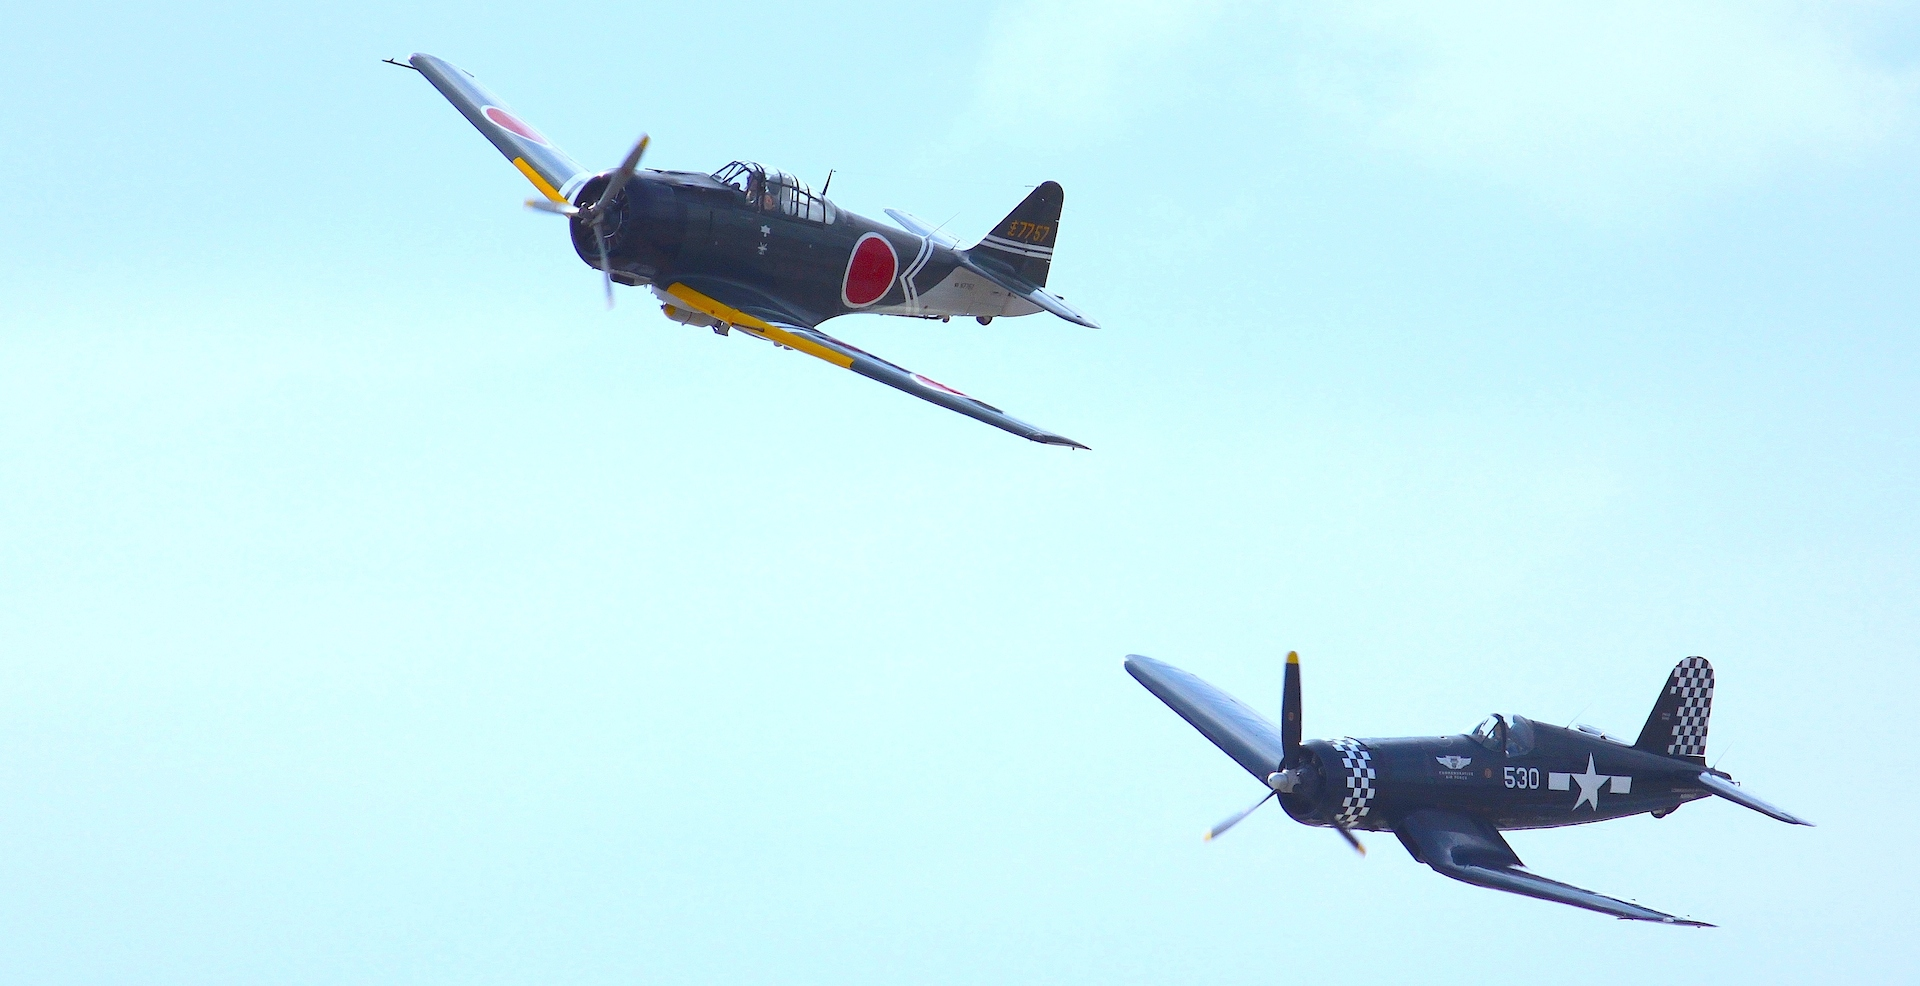 Jack Van Ness's ZERO replica chased by the CAF Dixie Wing's FG-1D Corsair during the 2014 Thunder in The Valley Airshow.